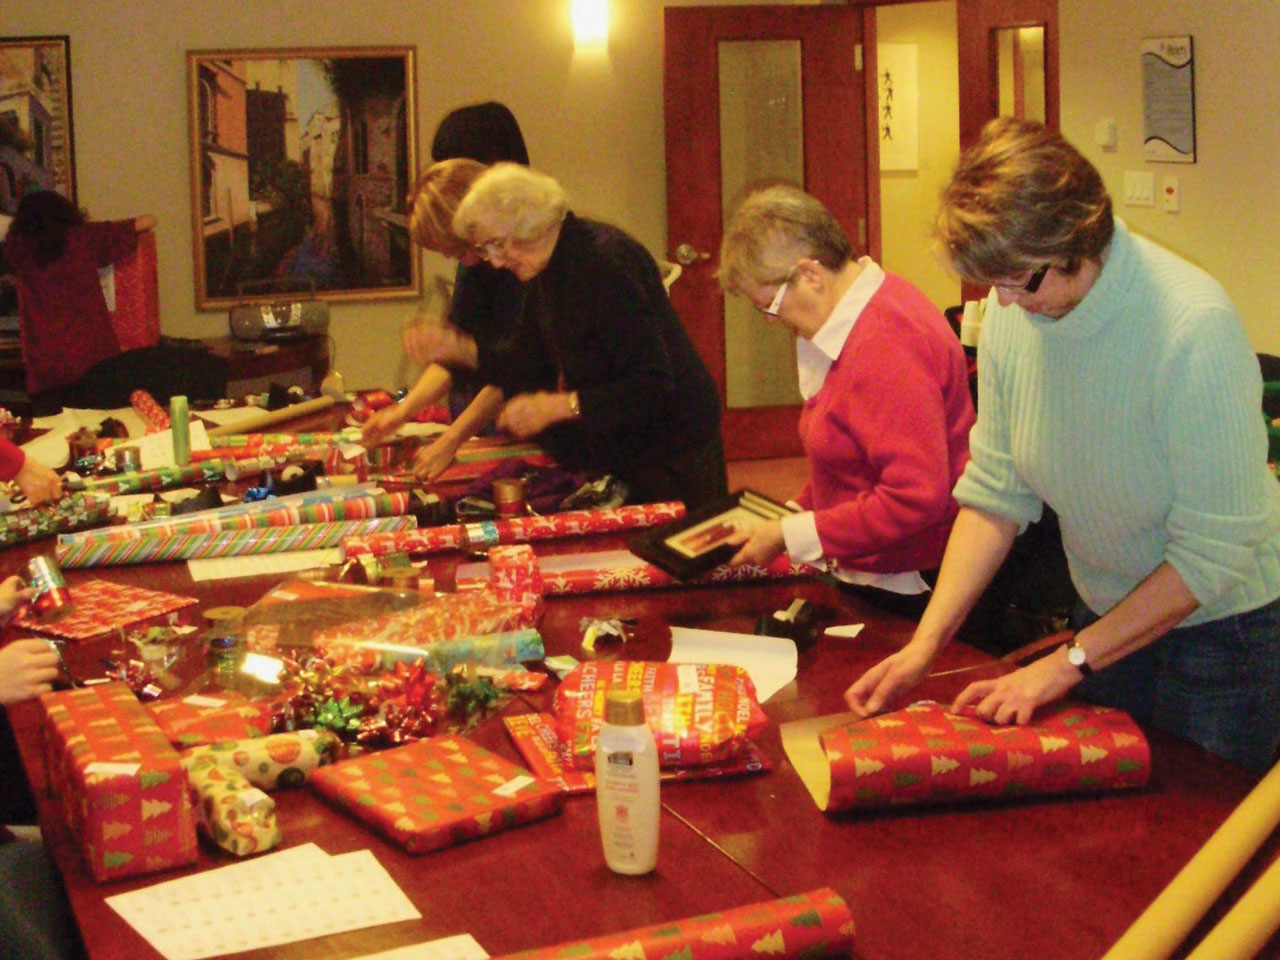 Volunteers wrapping presents on a long table